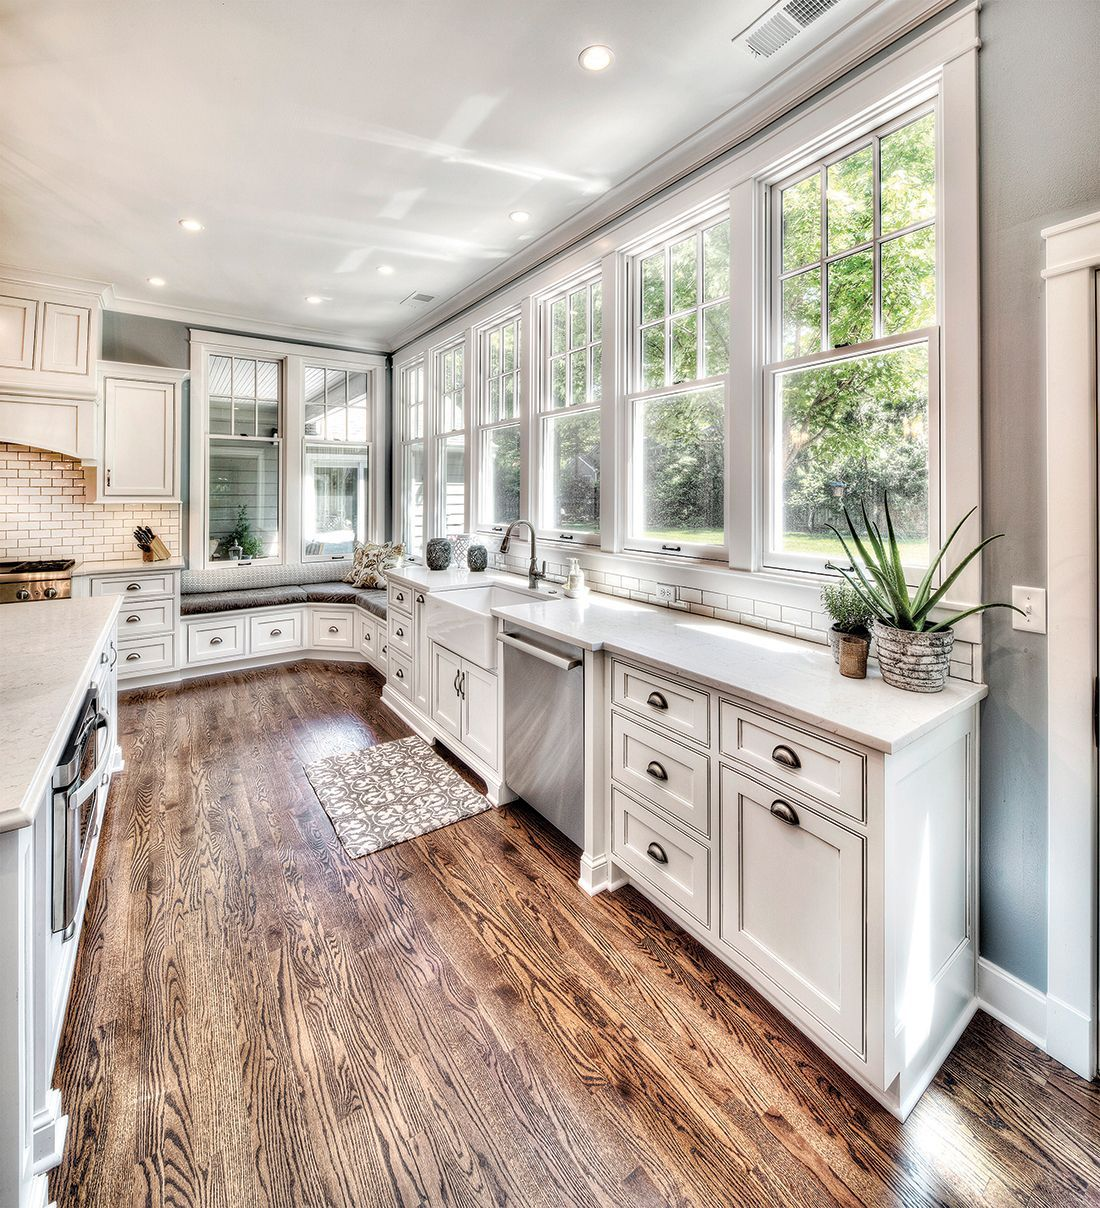 Superior A Substantial Kansas City Kitchen Remodel Subtly Shows Off Its Classy  Design And Quality Material Choices